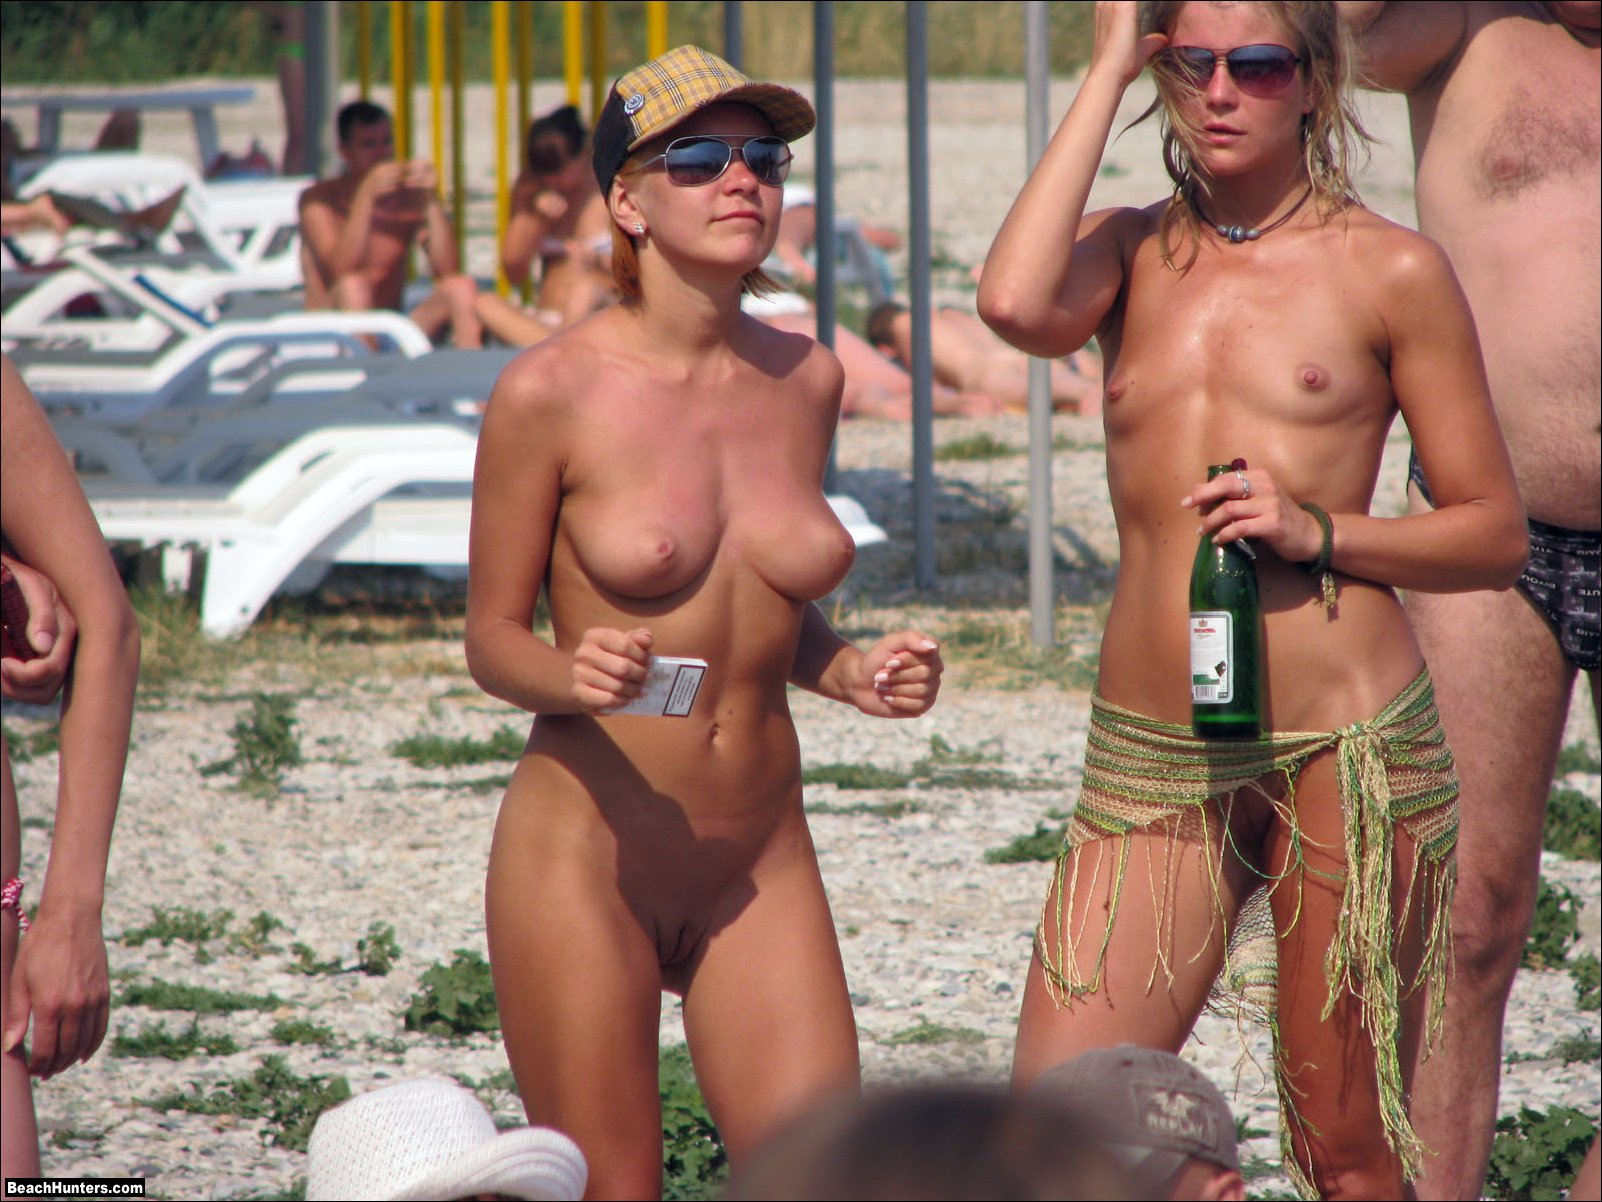 Women beach volleyball xxx pic nsfw photos